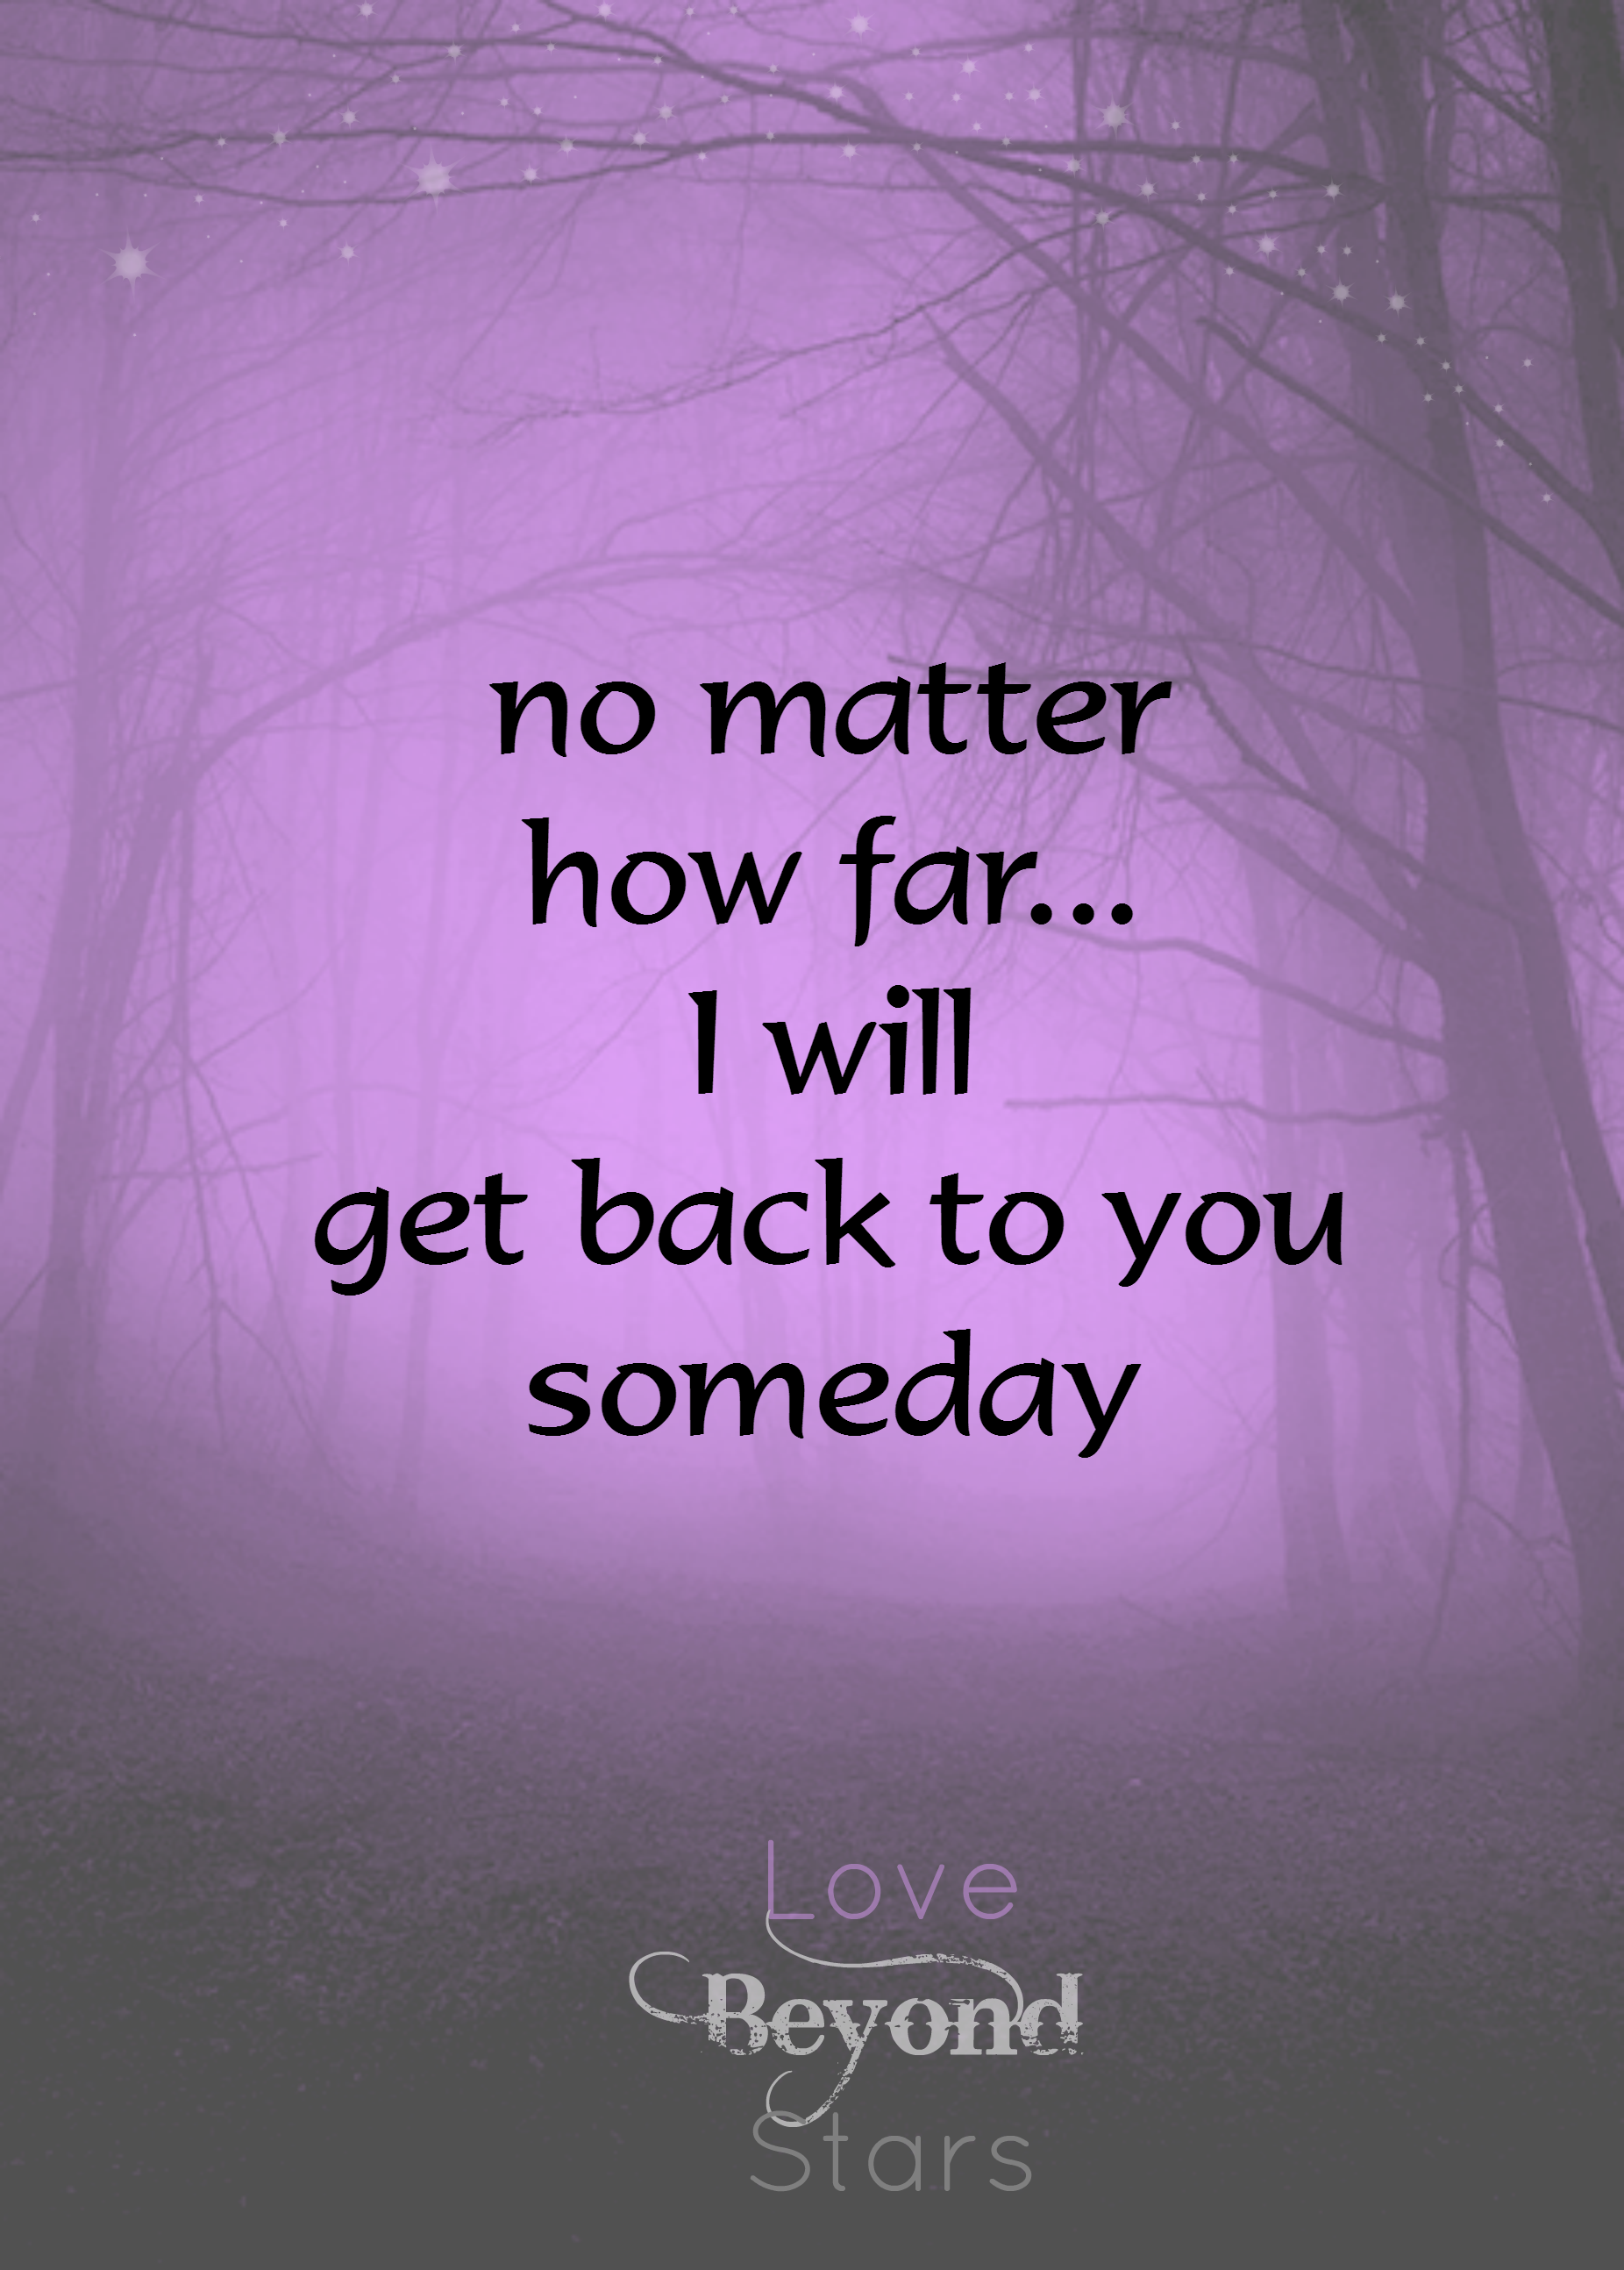 Pin By Agnes Ortiz On Love Beyond Stars Grief And Angels Grieving Quotes Mother Quotes Words